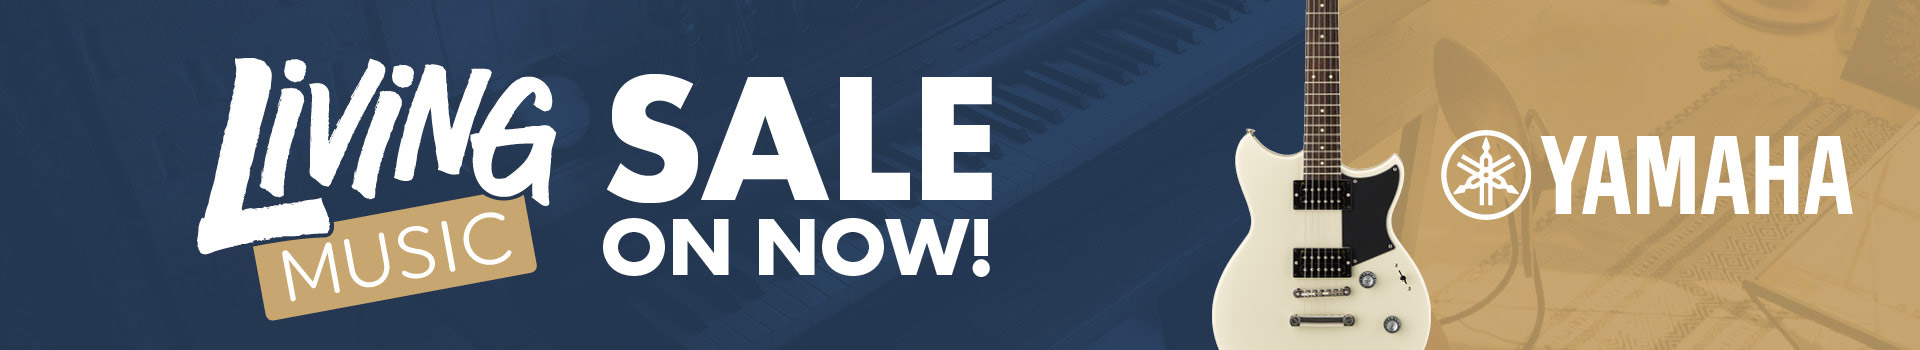 Yamaha Living Music Sale